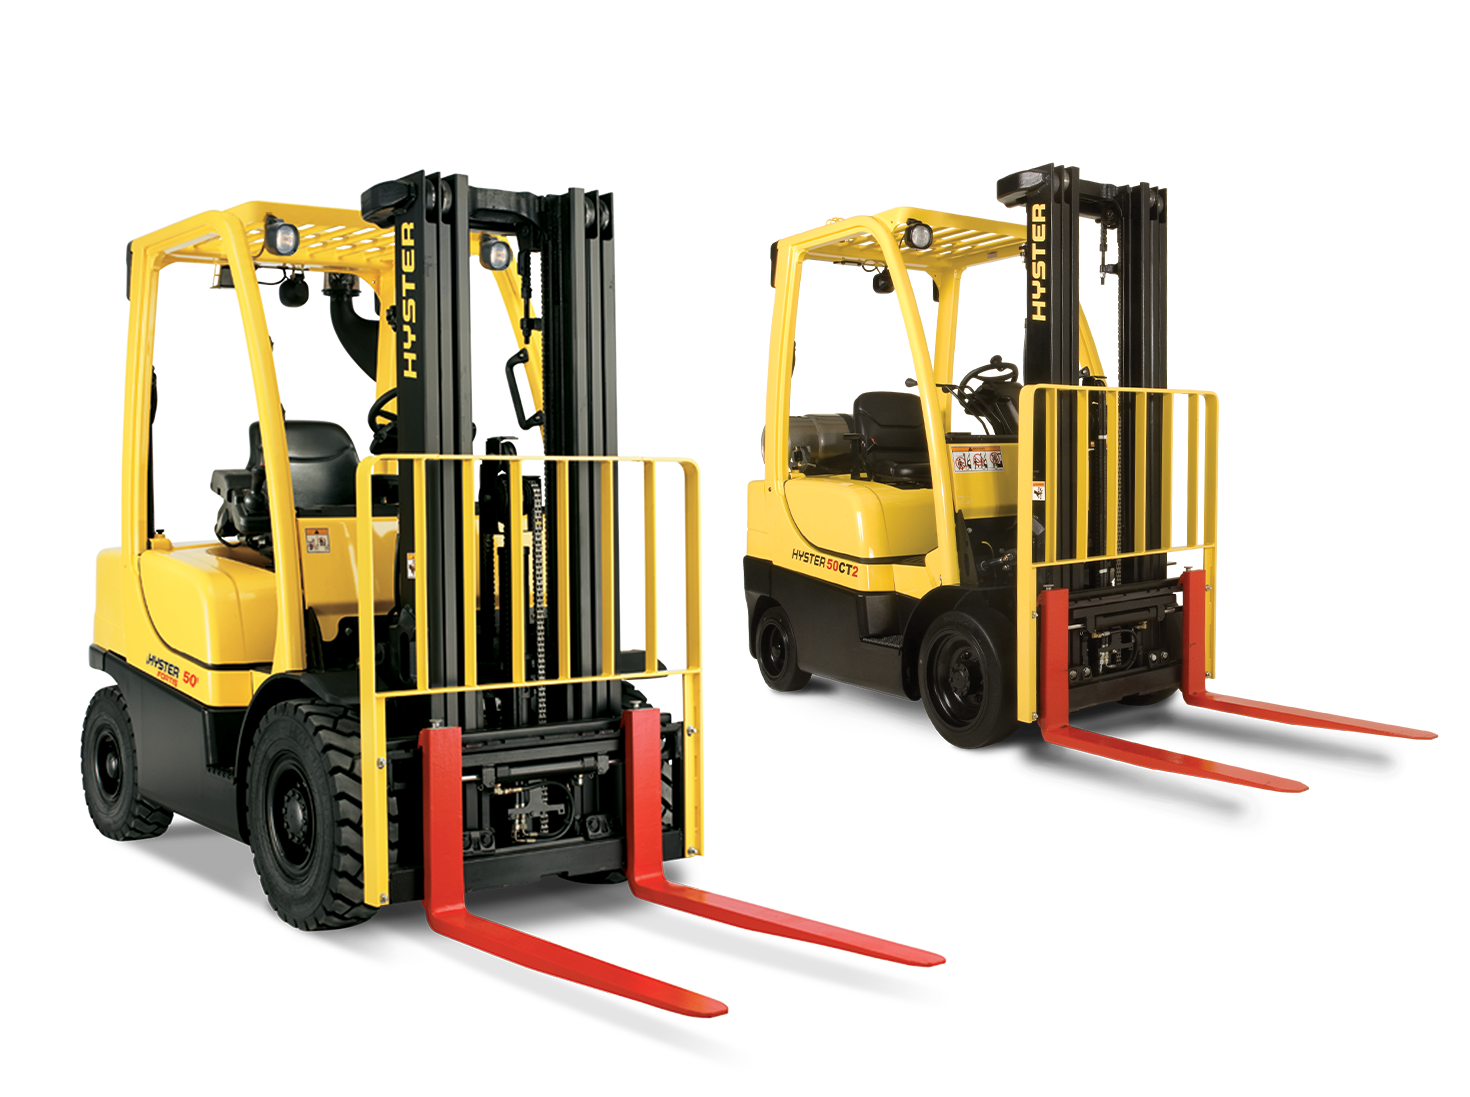 Hyster ICE Cushion and Pneumatic Tire Forklifts